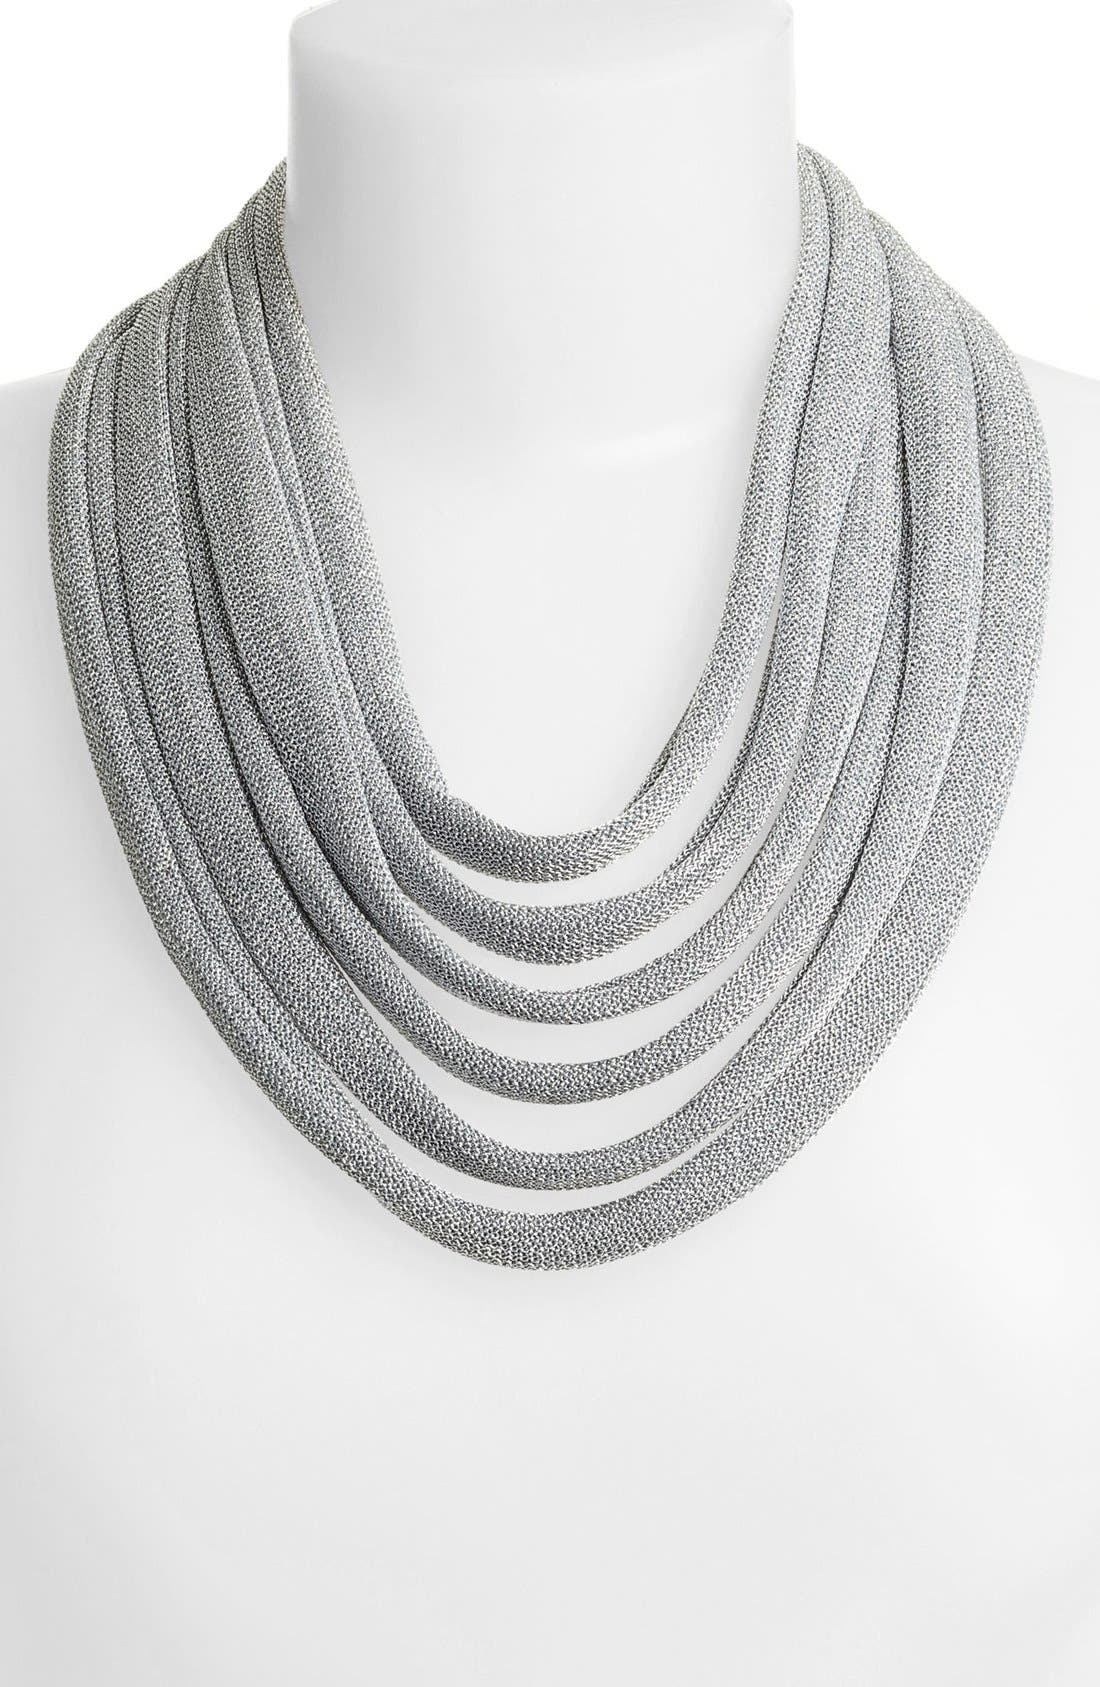 Alternate Image 1 Selected - Adami & Martucci 'Mesh' Multistrand Bib Necklace